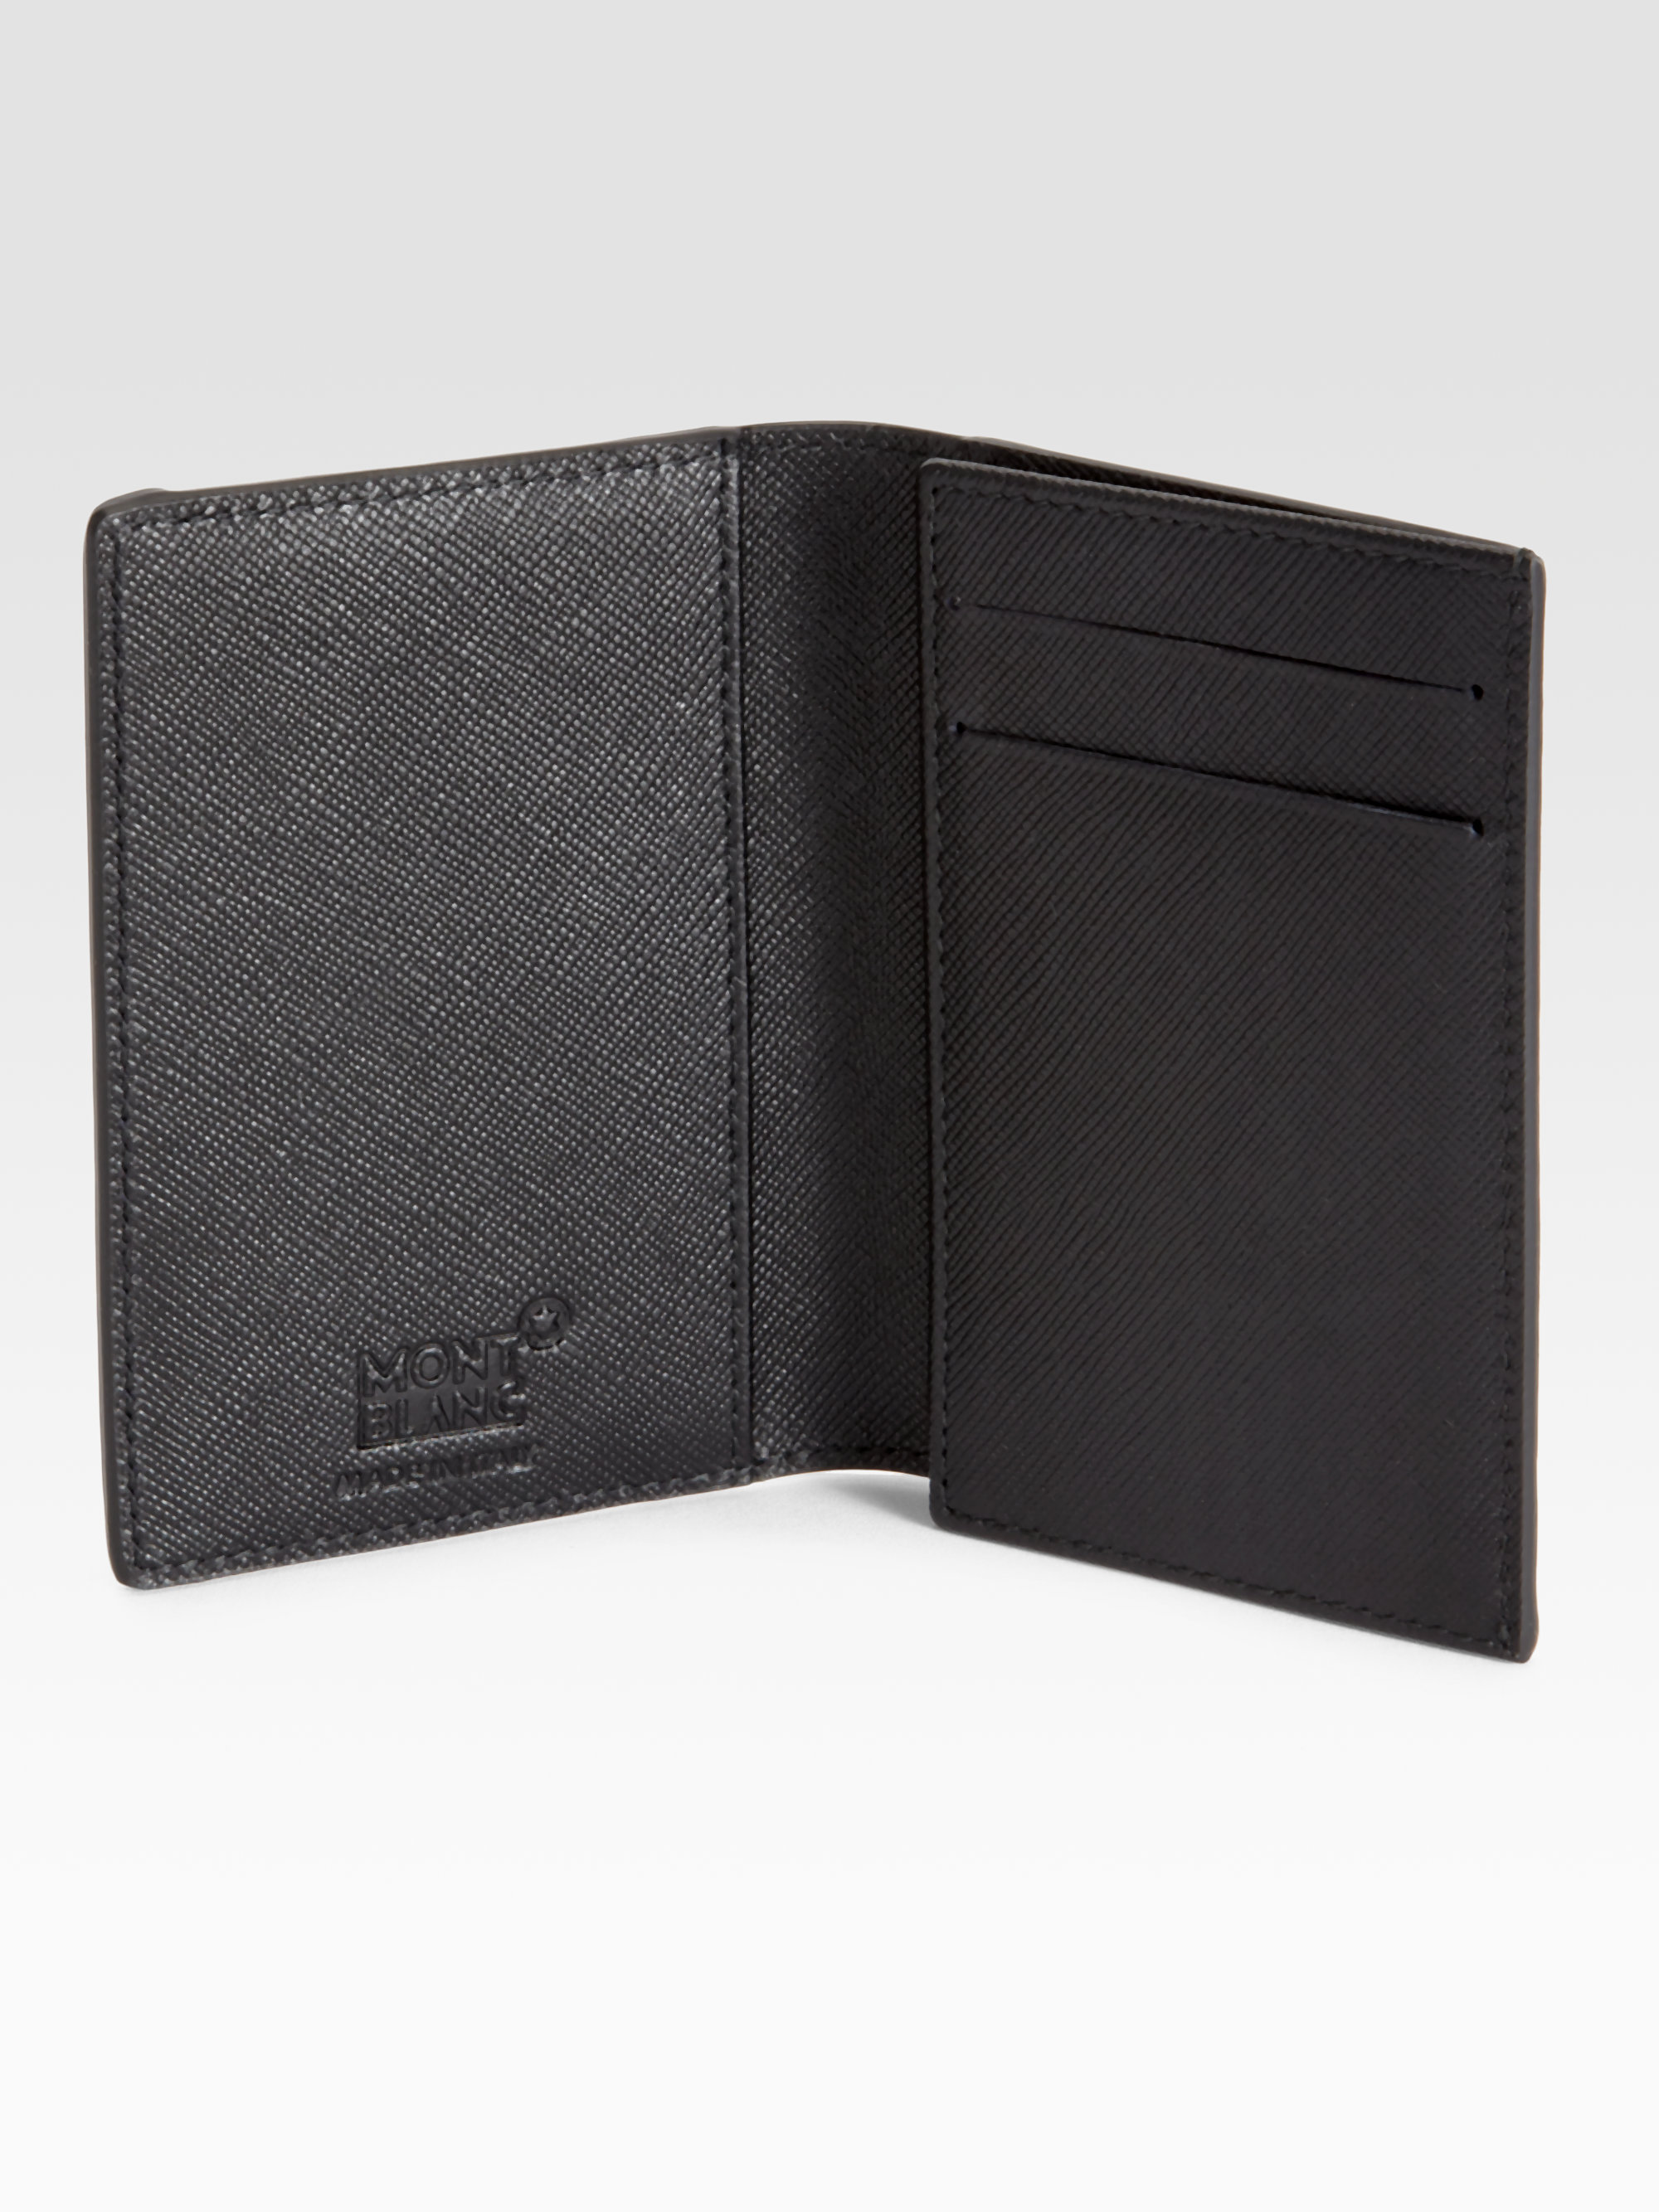 Lyst - Montblanc Nightlife Business Card Holder in Black for Men